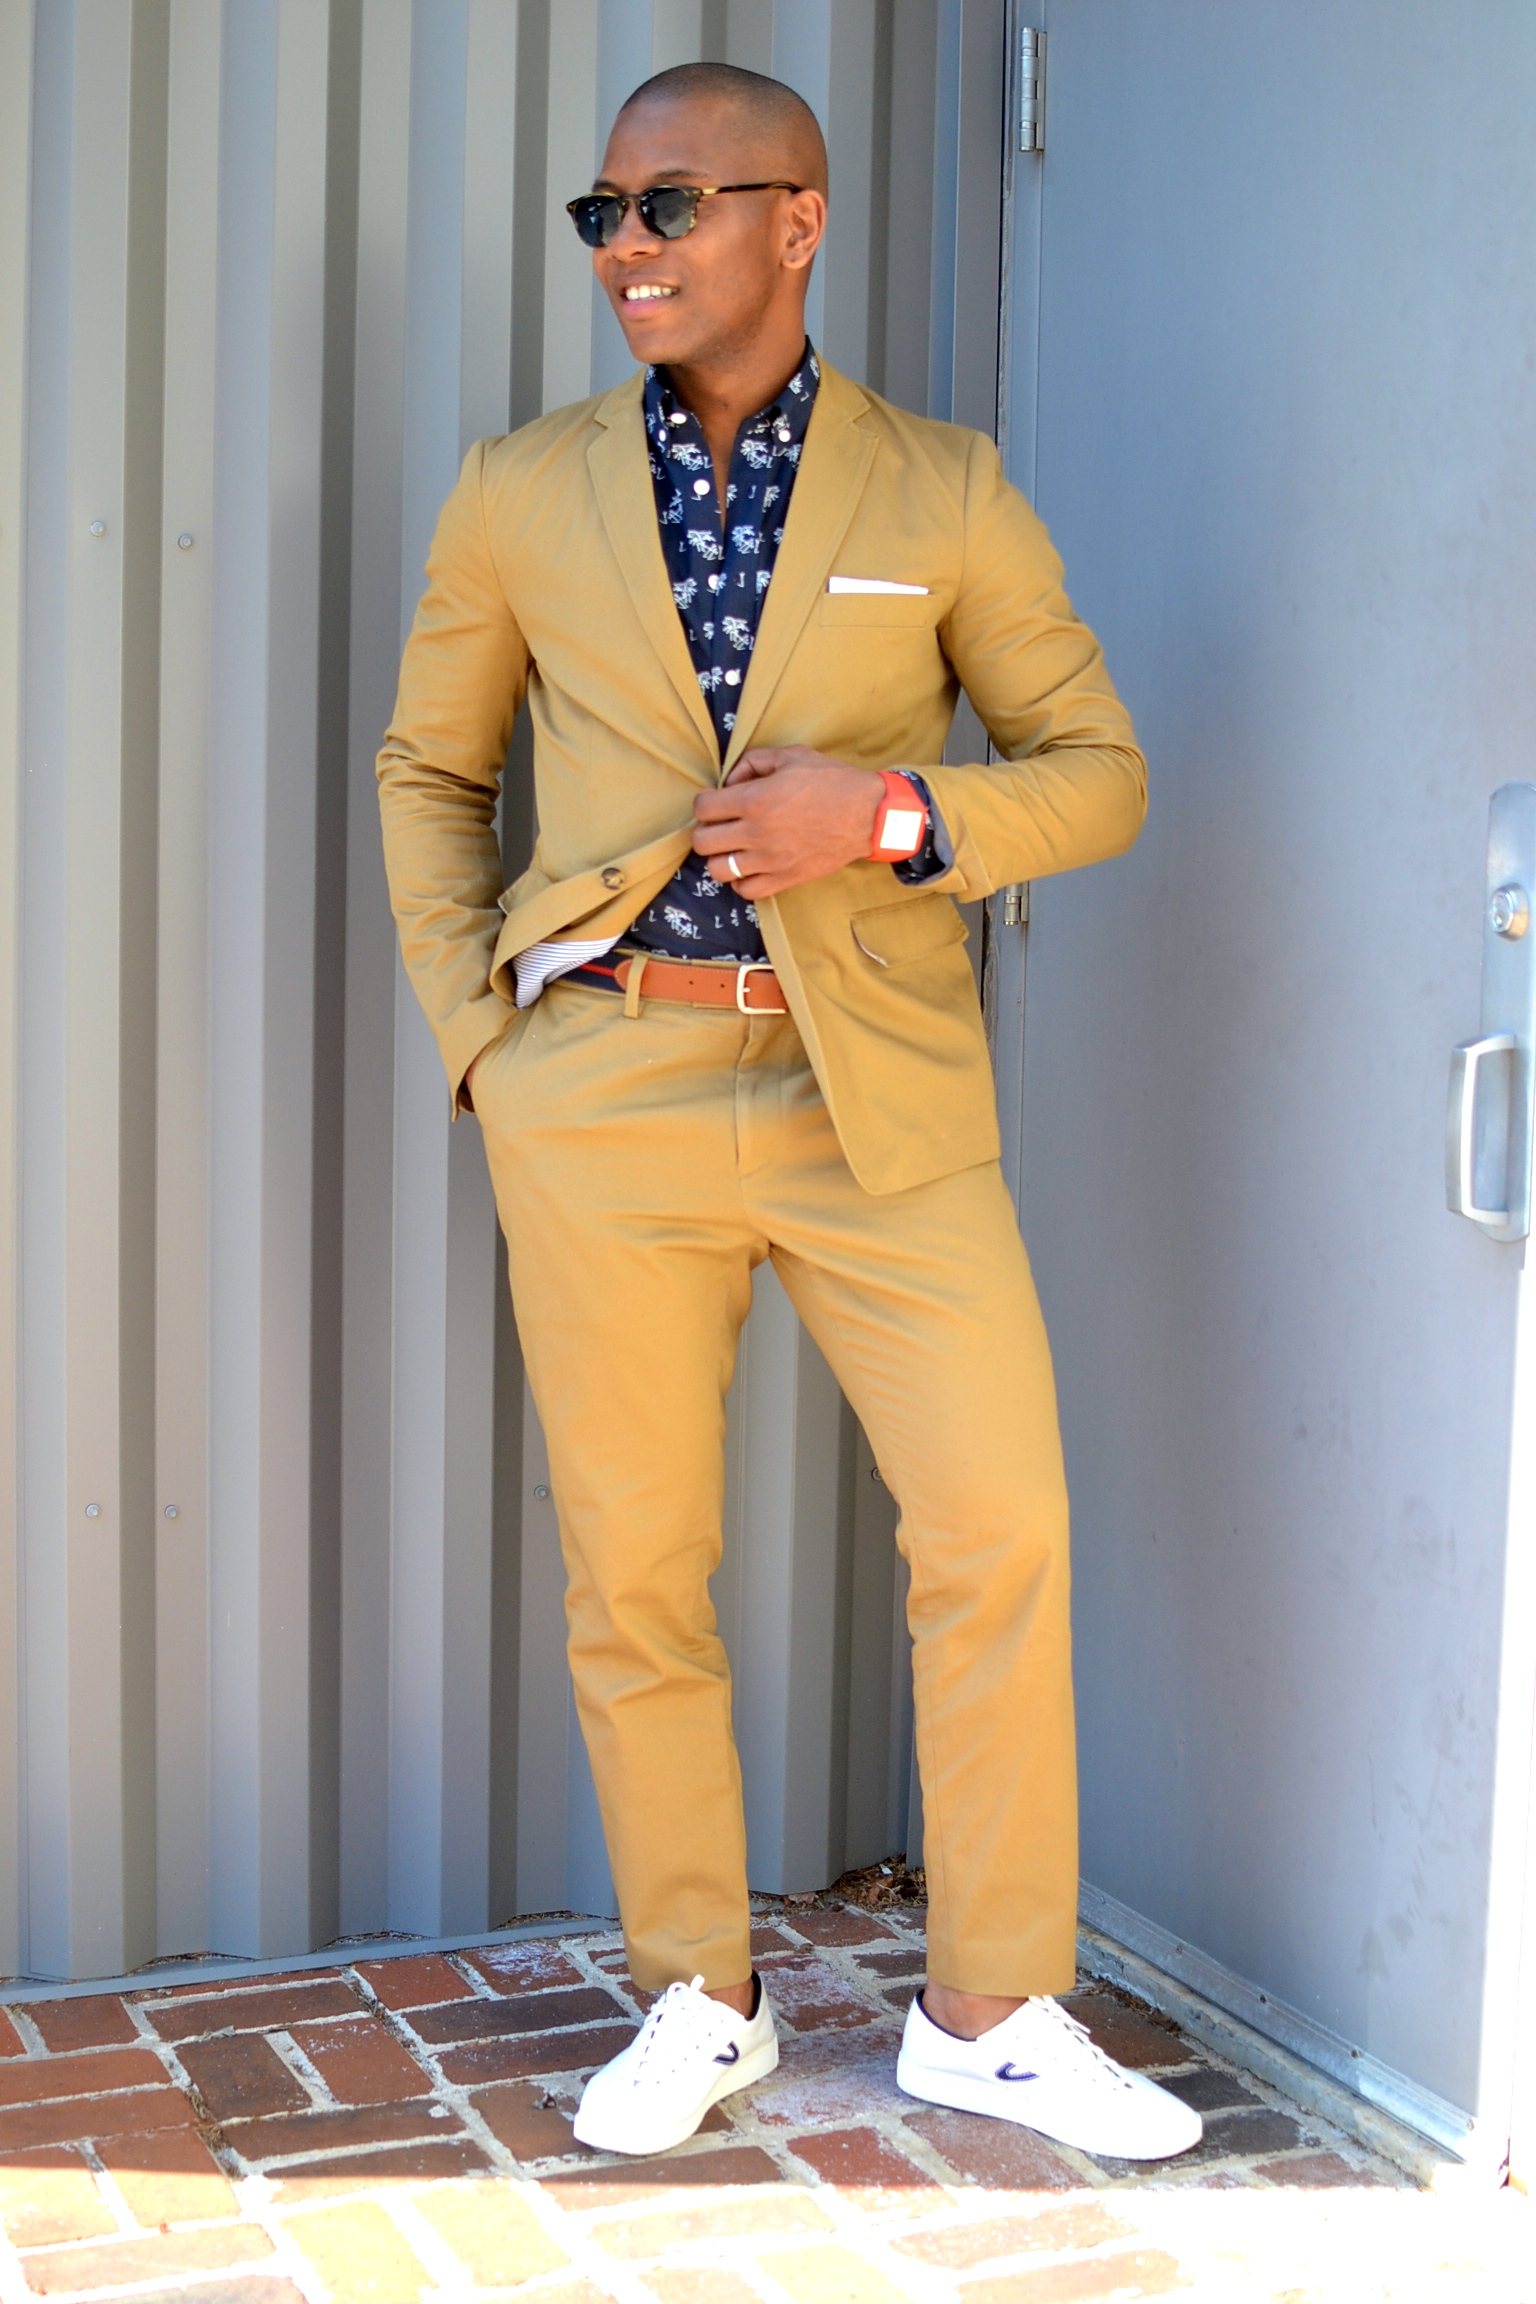 Frank & Oak Khaki Suit on Men's Style Pro